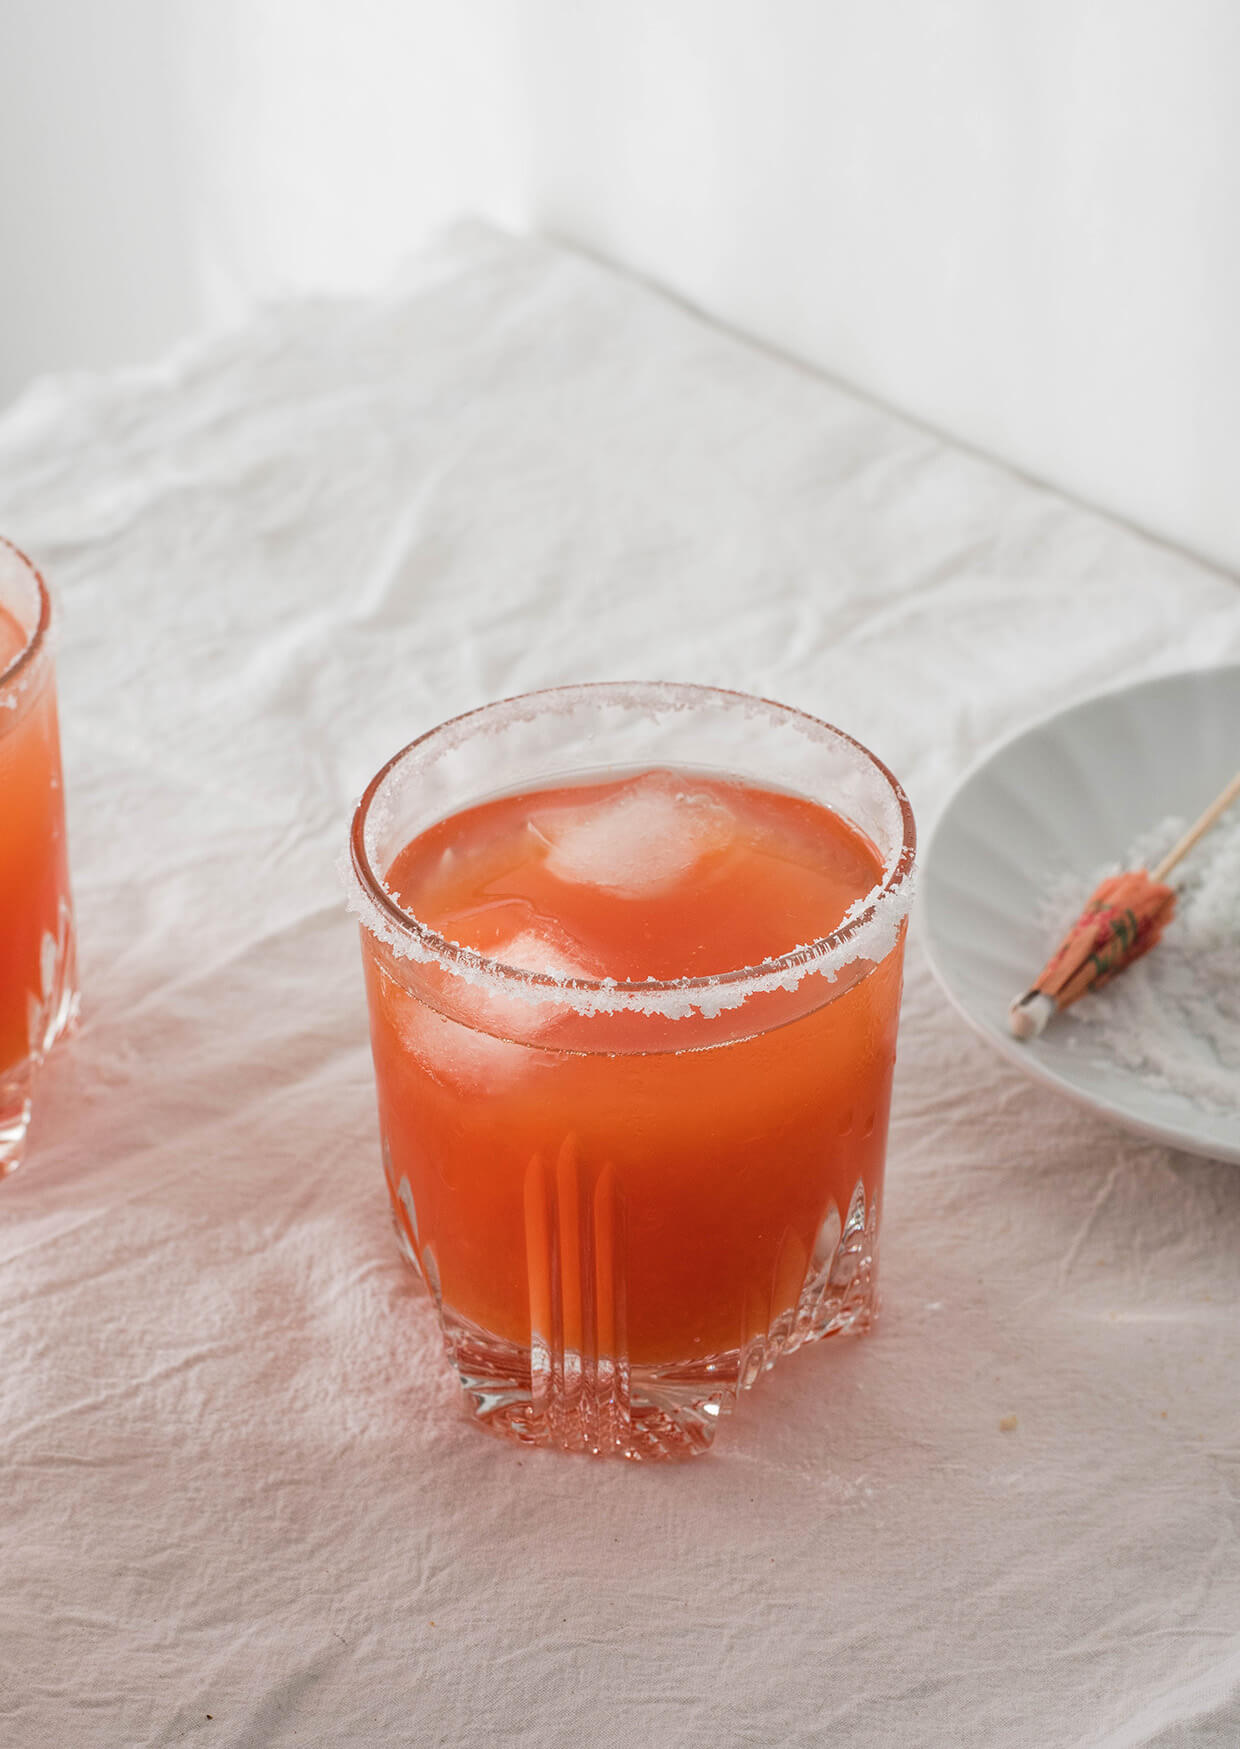 learn how to make golden blood orange margaritas with reposado tequila but no triple sec! smooth and sweet, they're insanely drinkable and pretty!